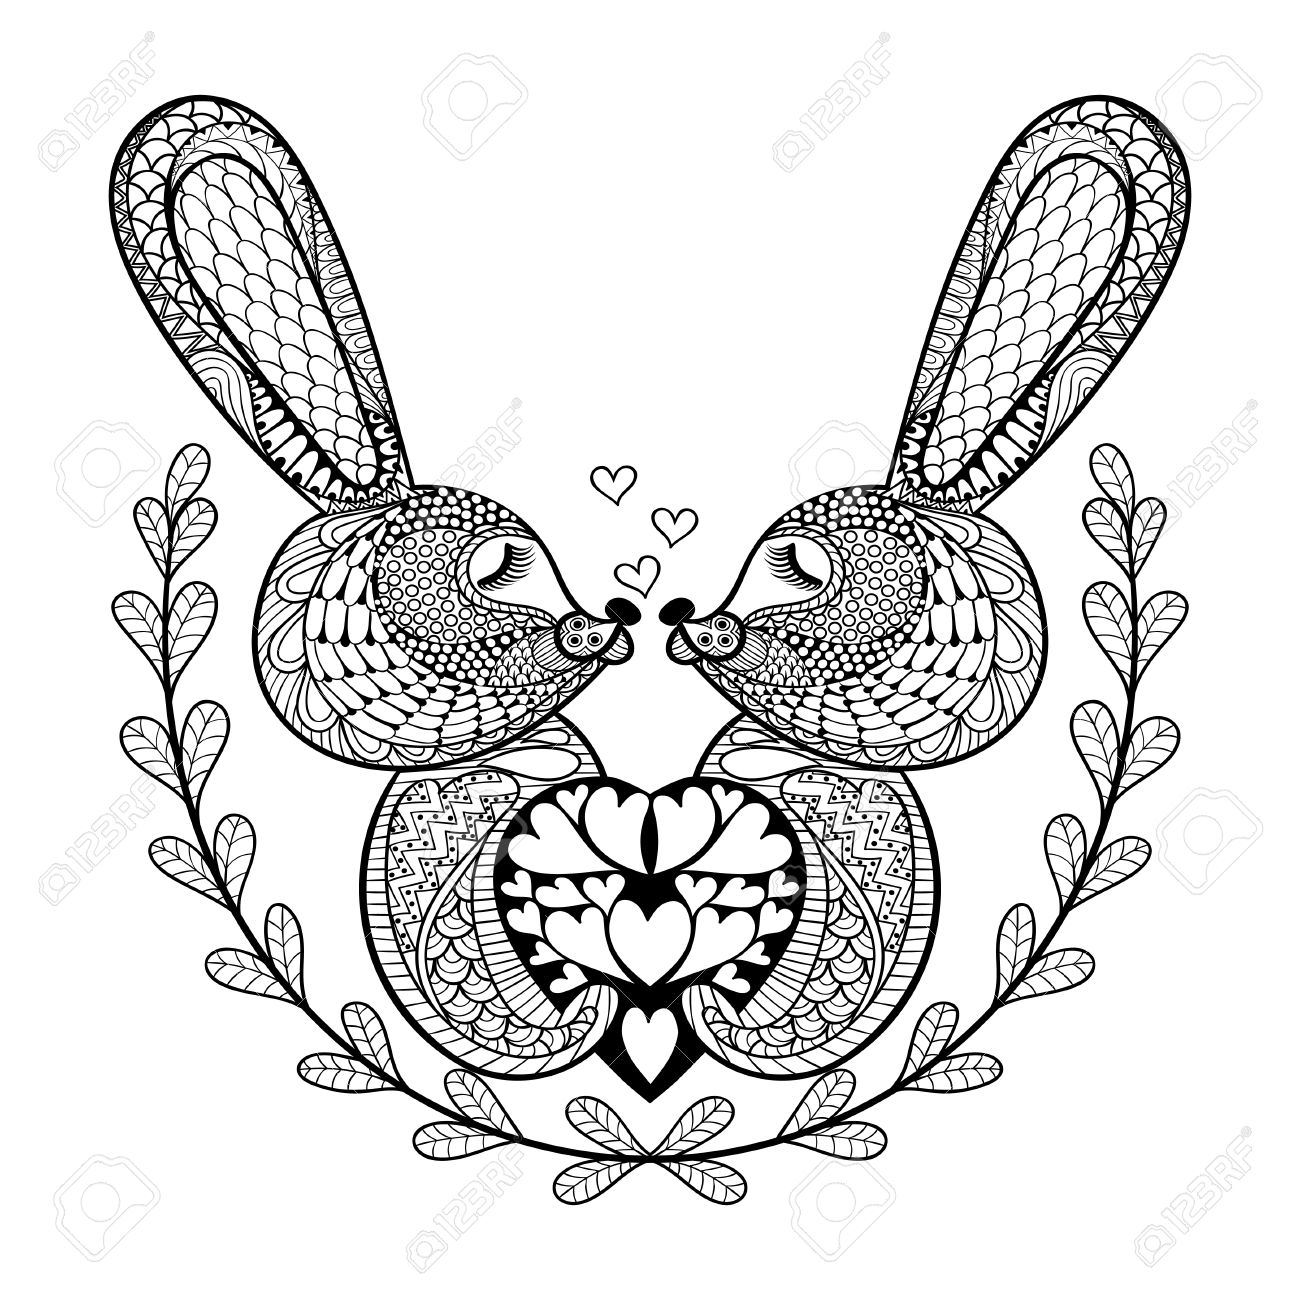 Hand Drawn Lovely Rabbit For St Valentines Day In Doodle Zentangle Style Adult